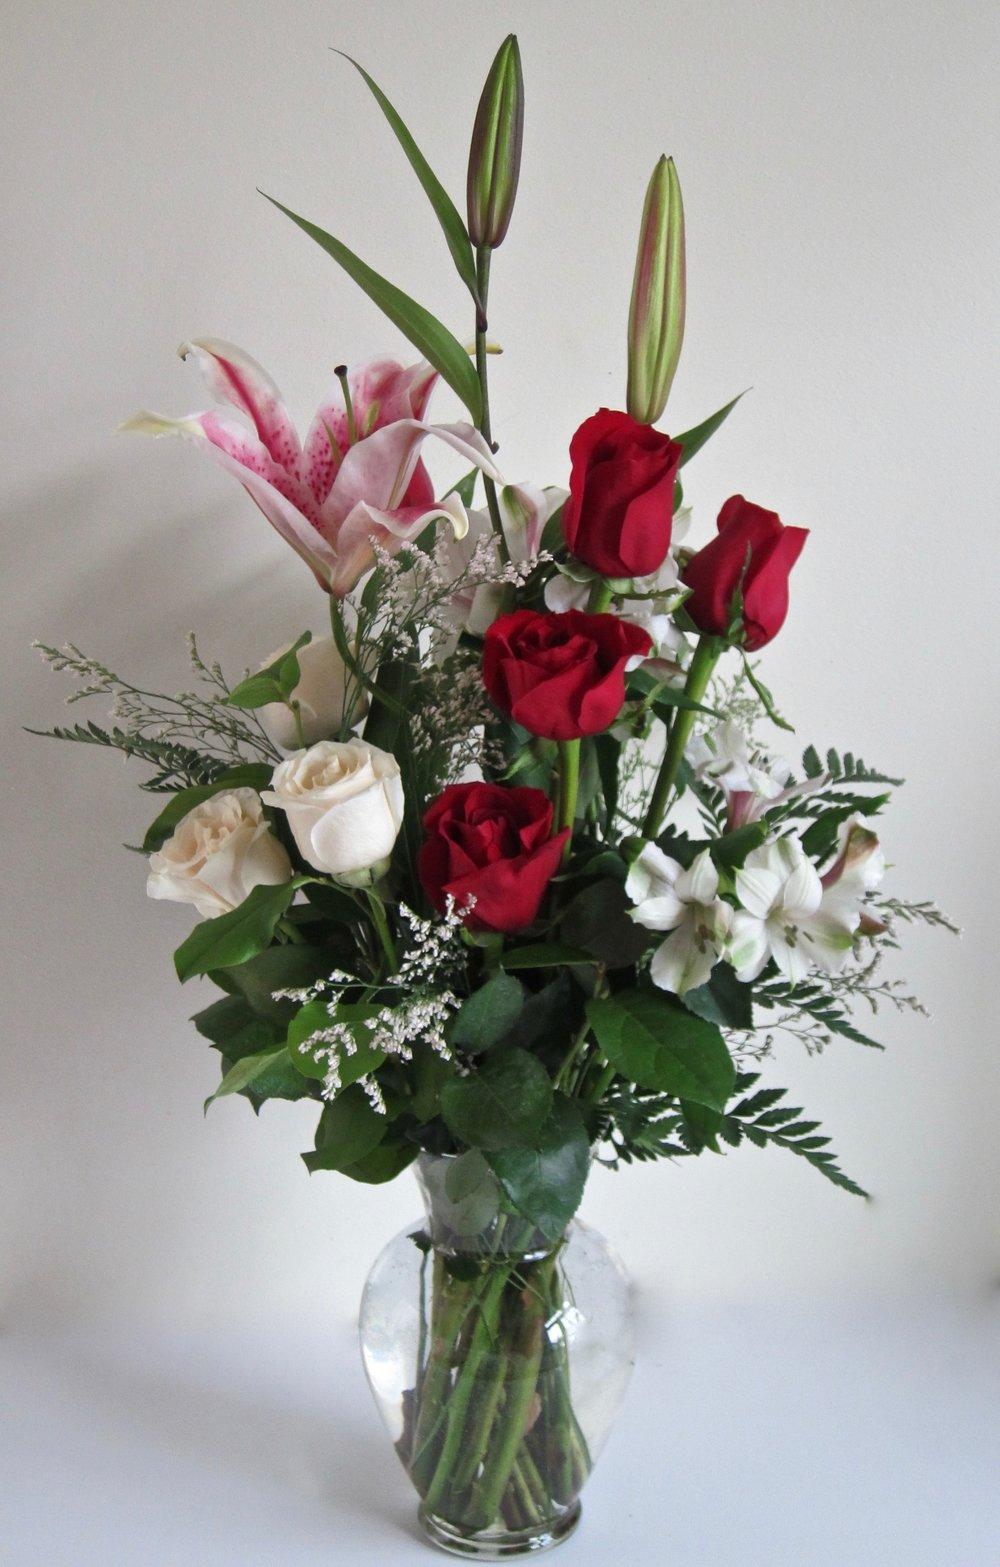 STAR LILIES AND ROSES pair nicely in a tall bouquet.  Half dozen roses mixed with other flowers for $55.